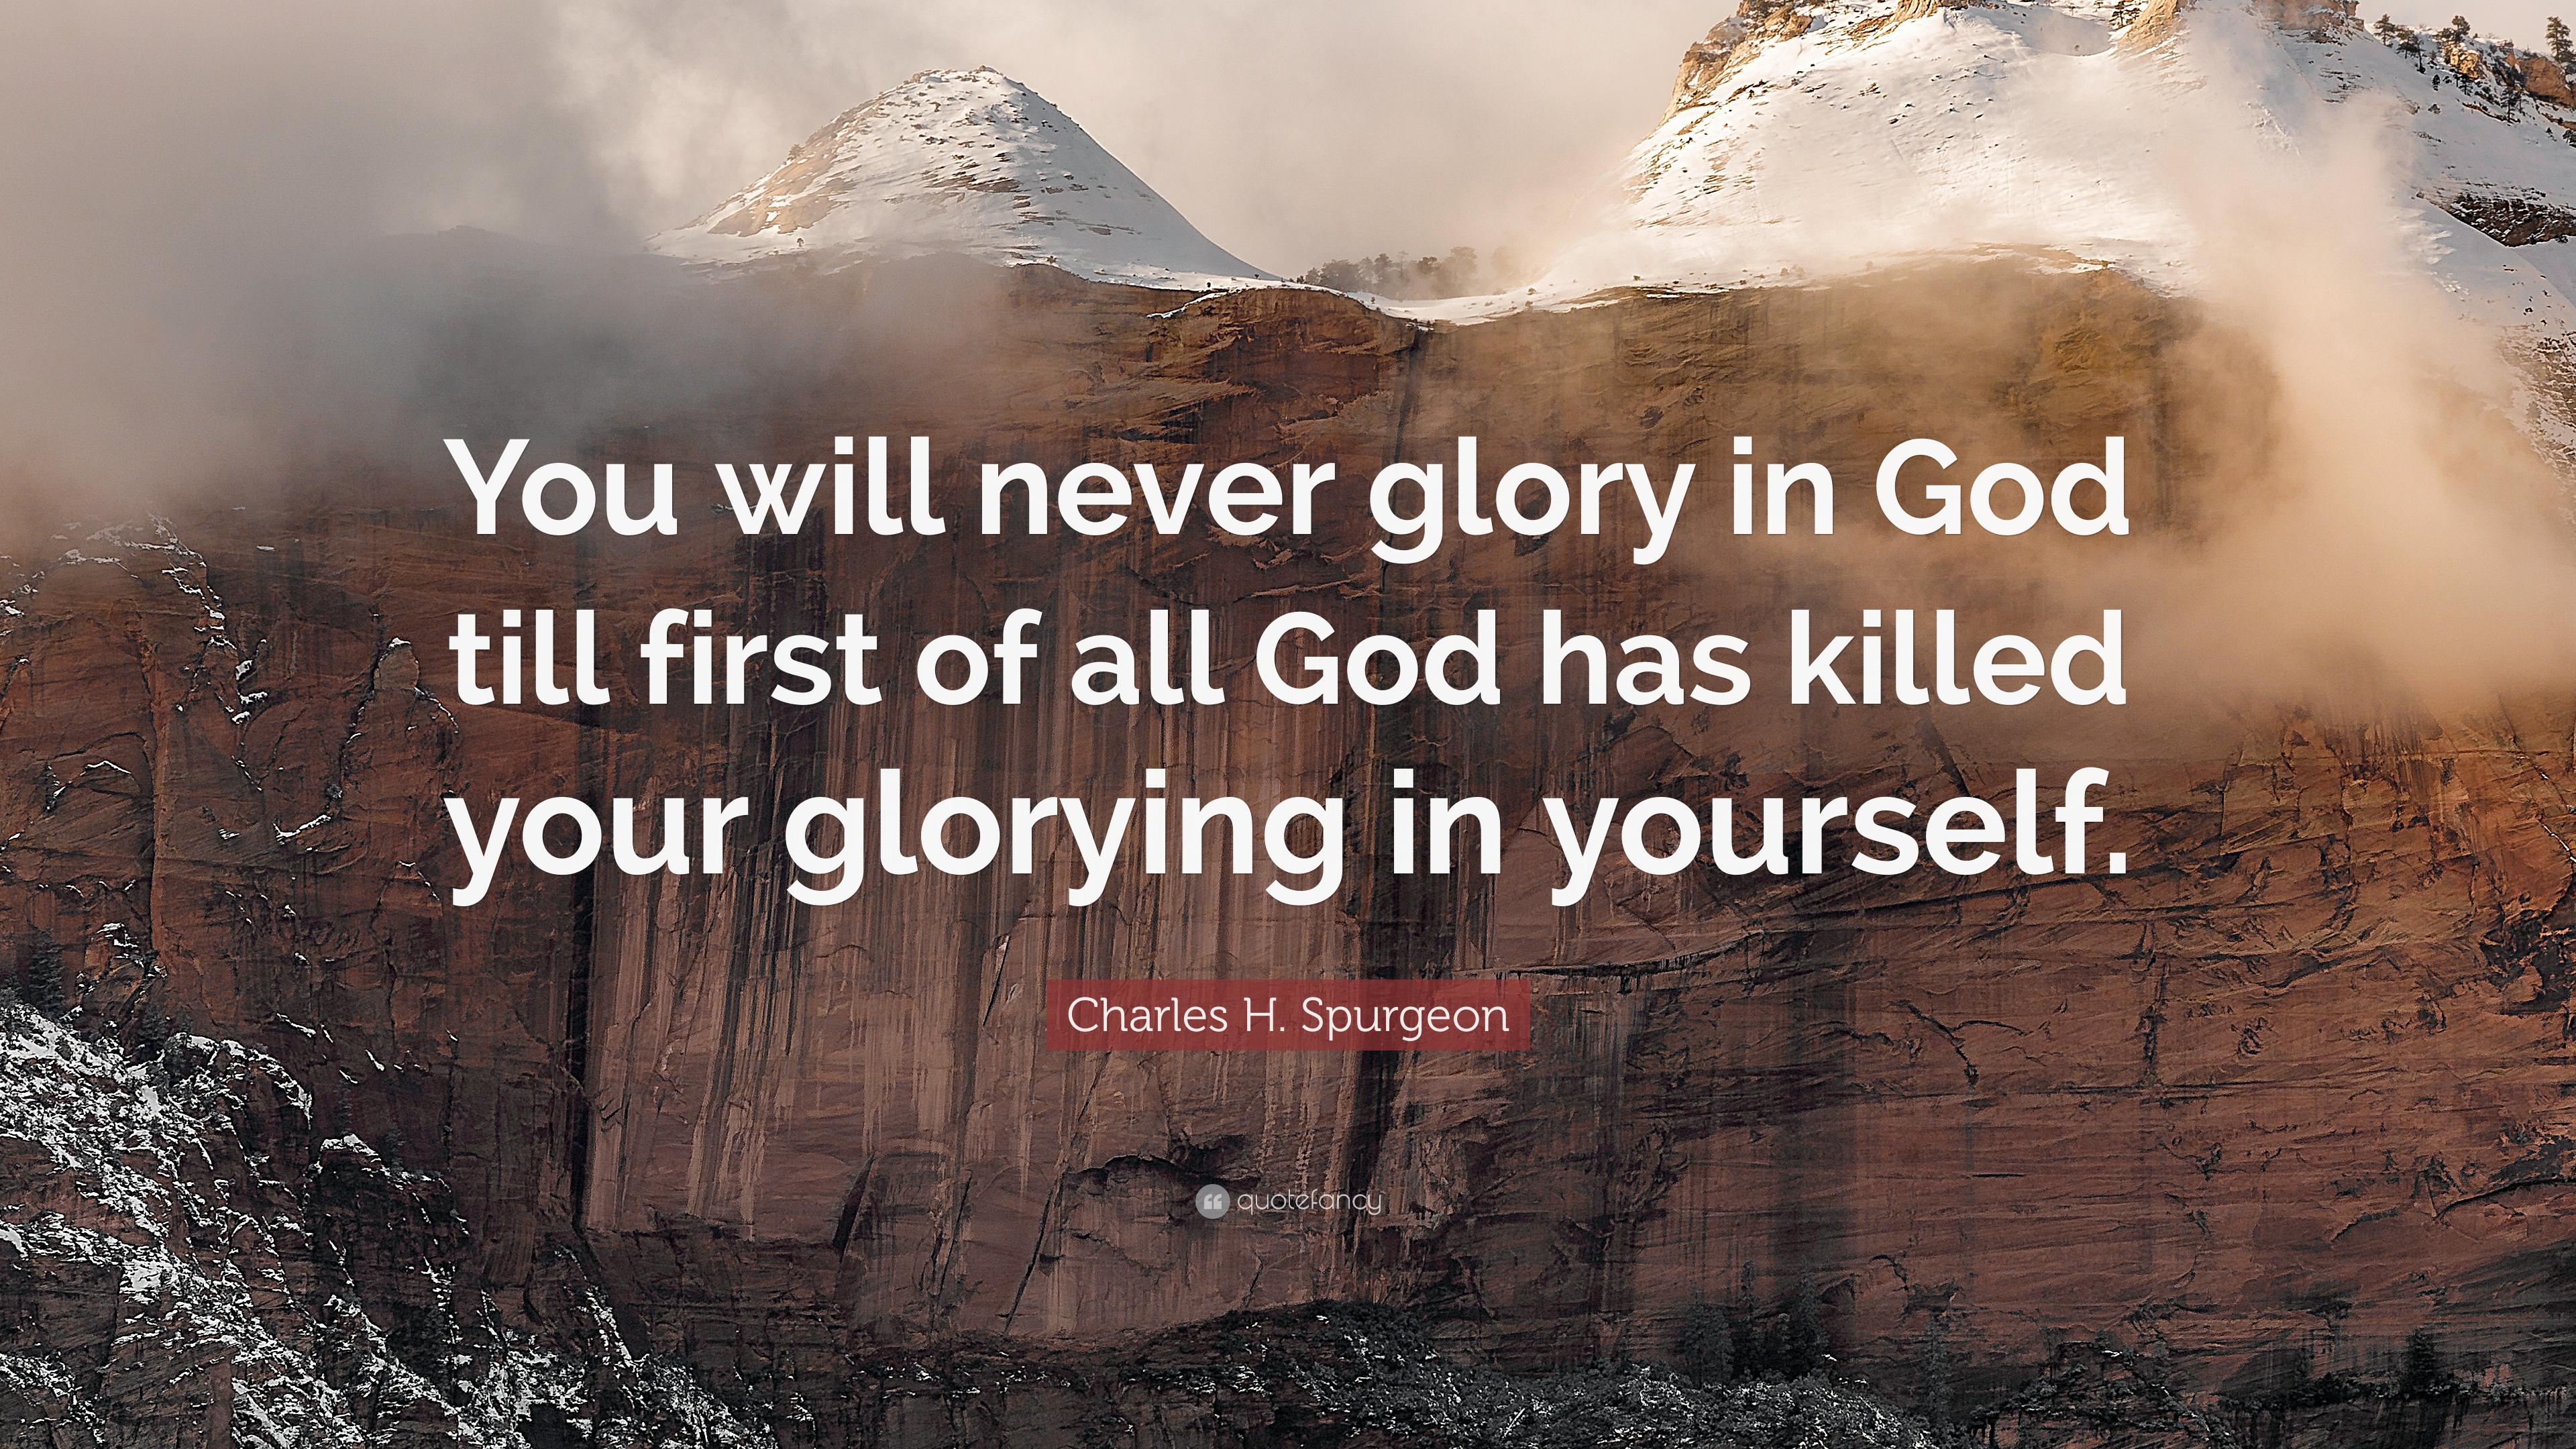 Charles H Spurgeon Quote You Will Never Glory In God Till First